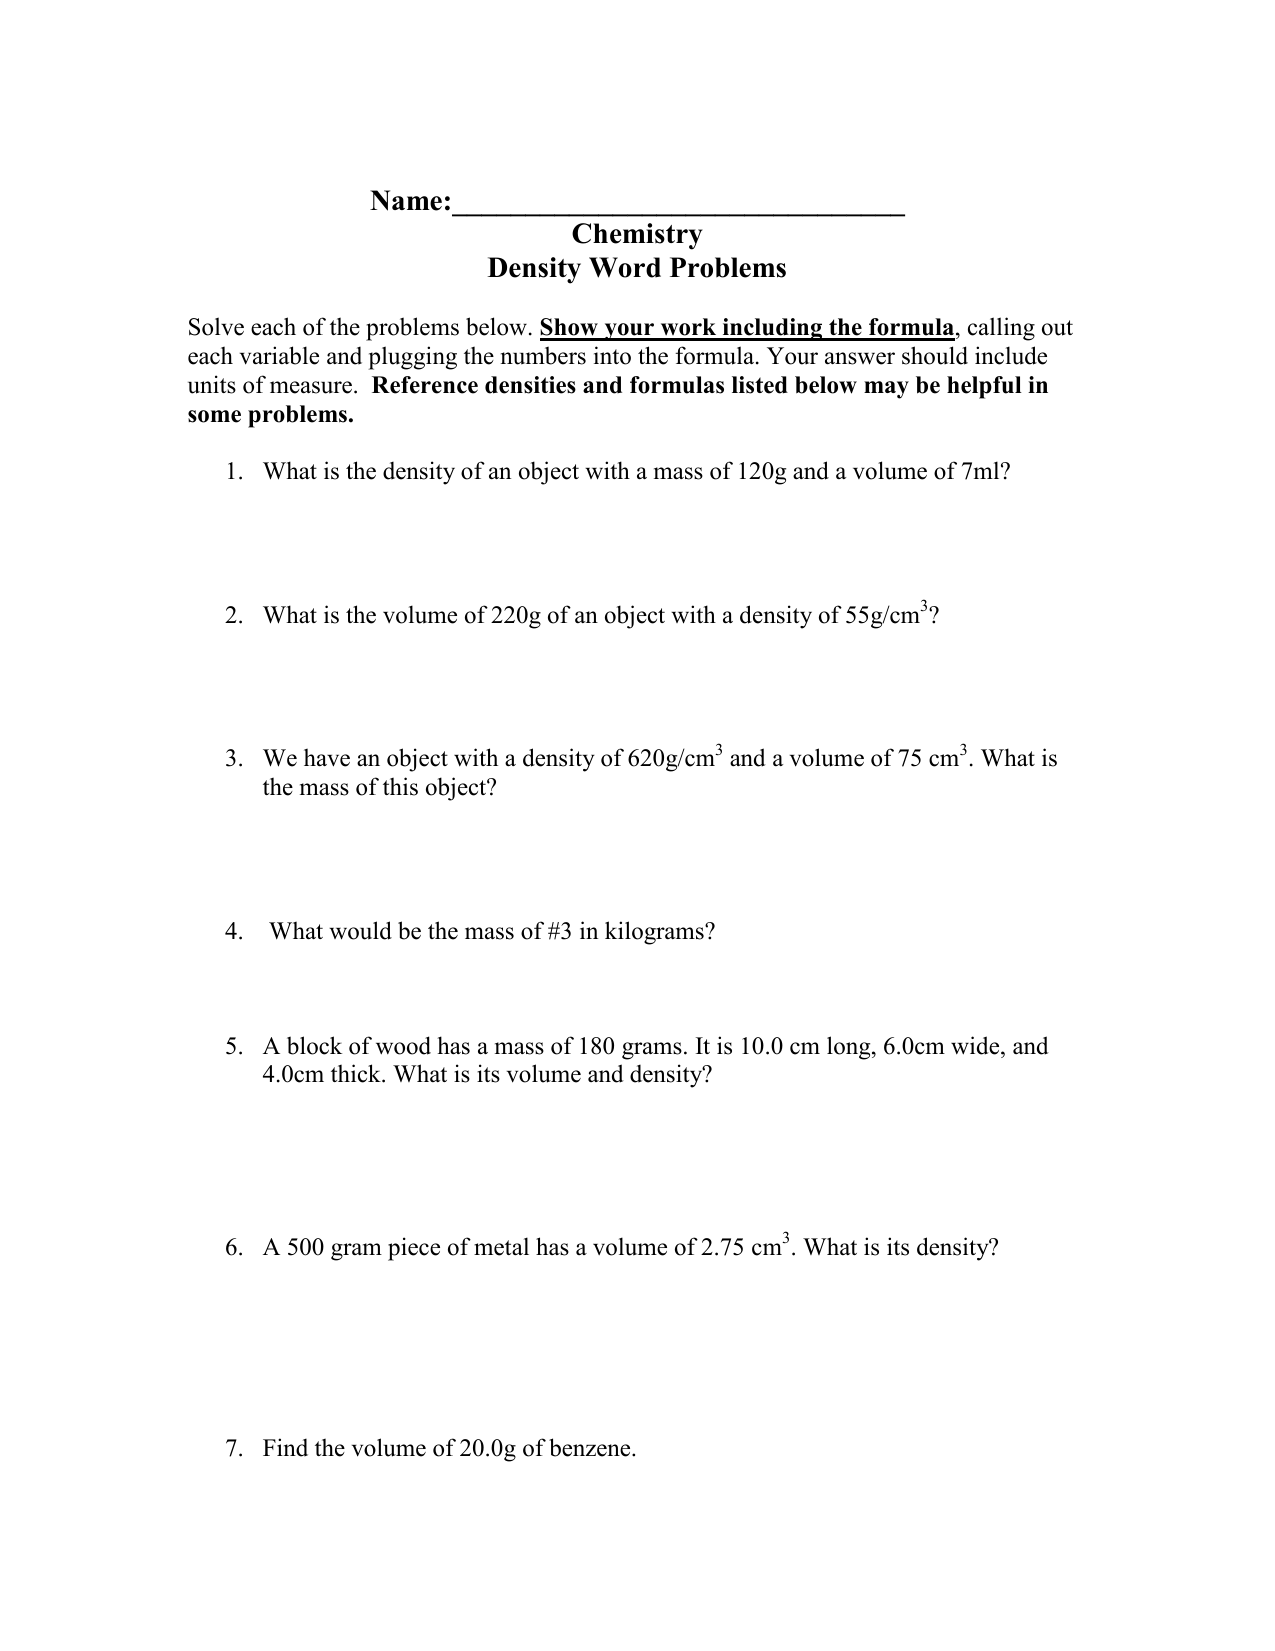 Worksheets Volume Word Problems Worksheets density word problems 008418030 1 88e8688eef12a35a48c6b97bd0aa4371 png